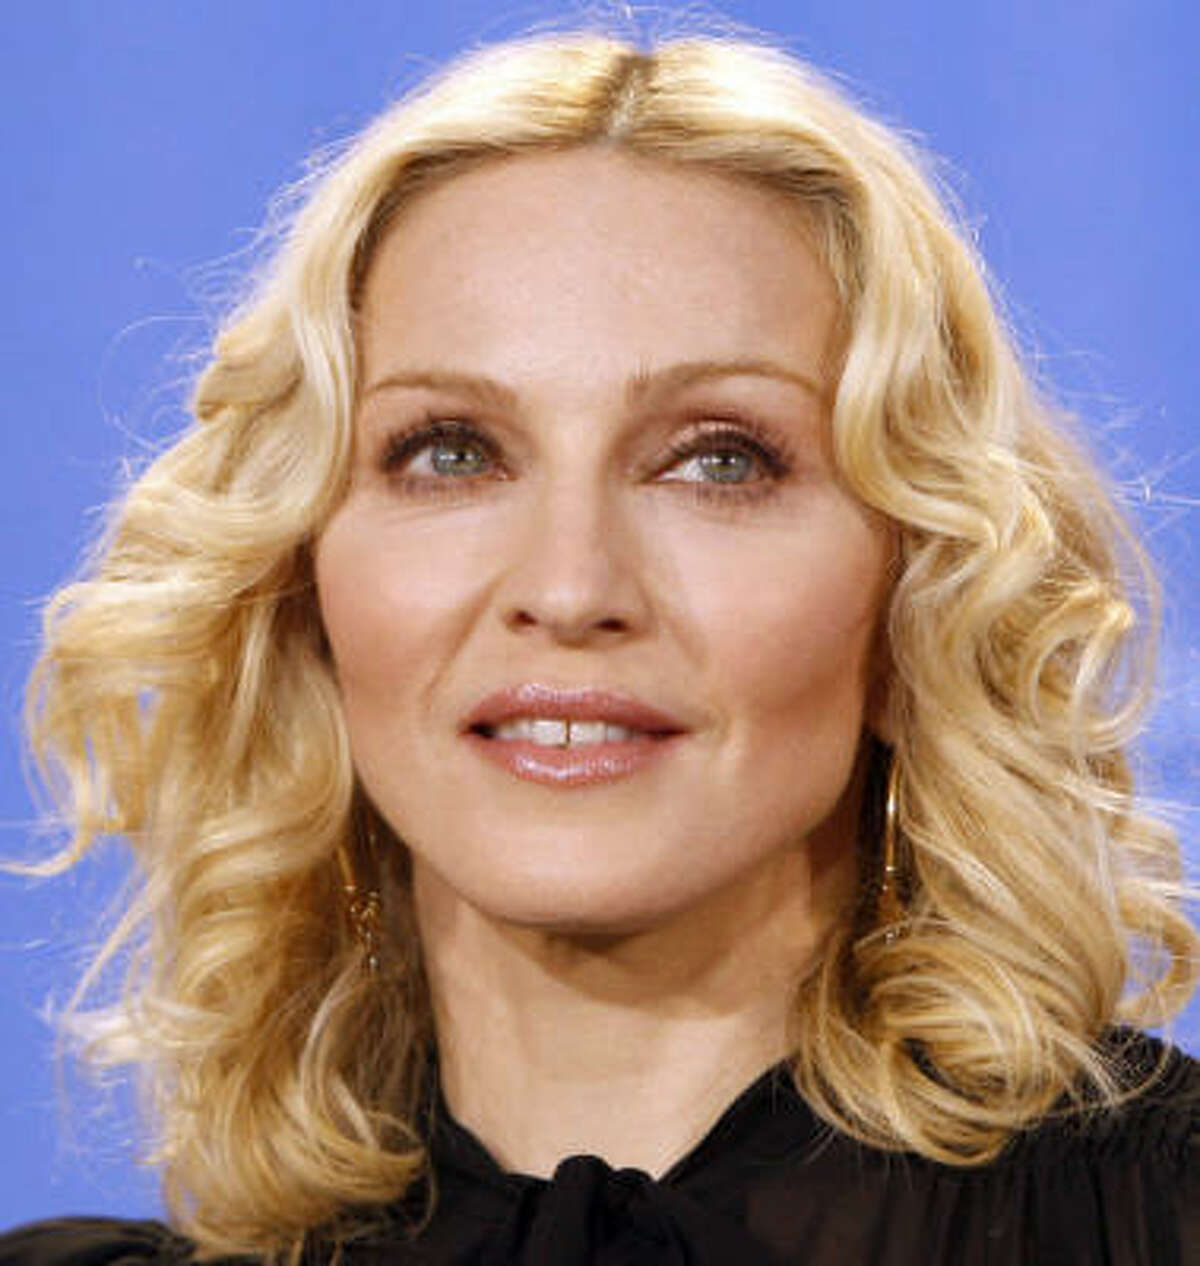 While most celebrities fix their imperfections and get veneers, the Material Girl has had the gap between her teeth for more than 20 years.